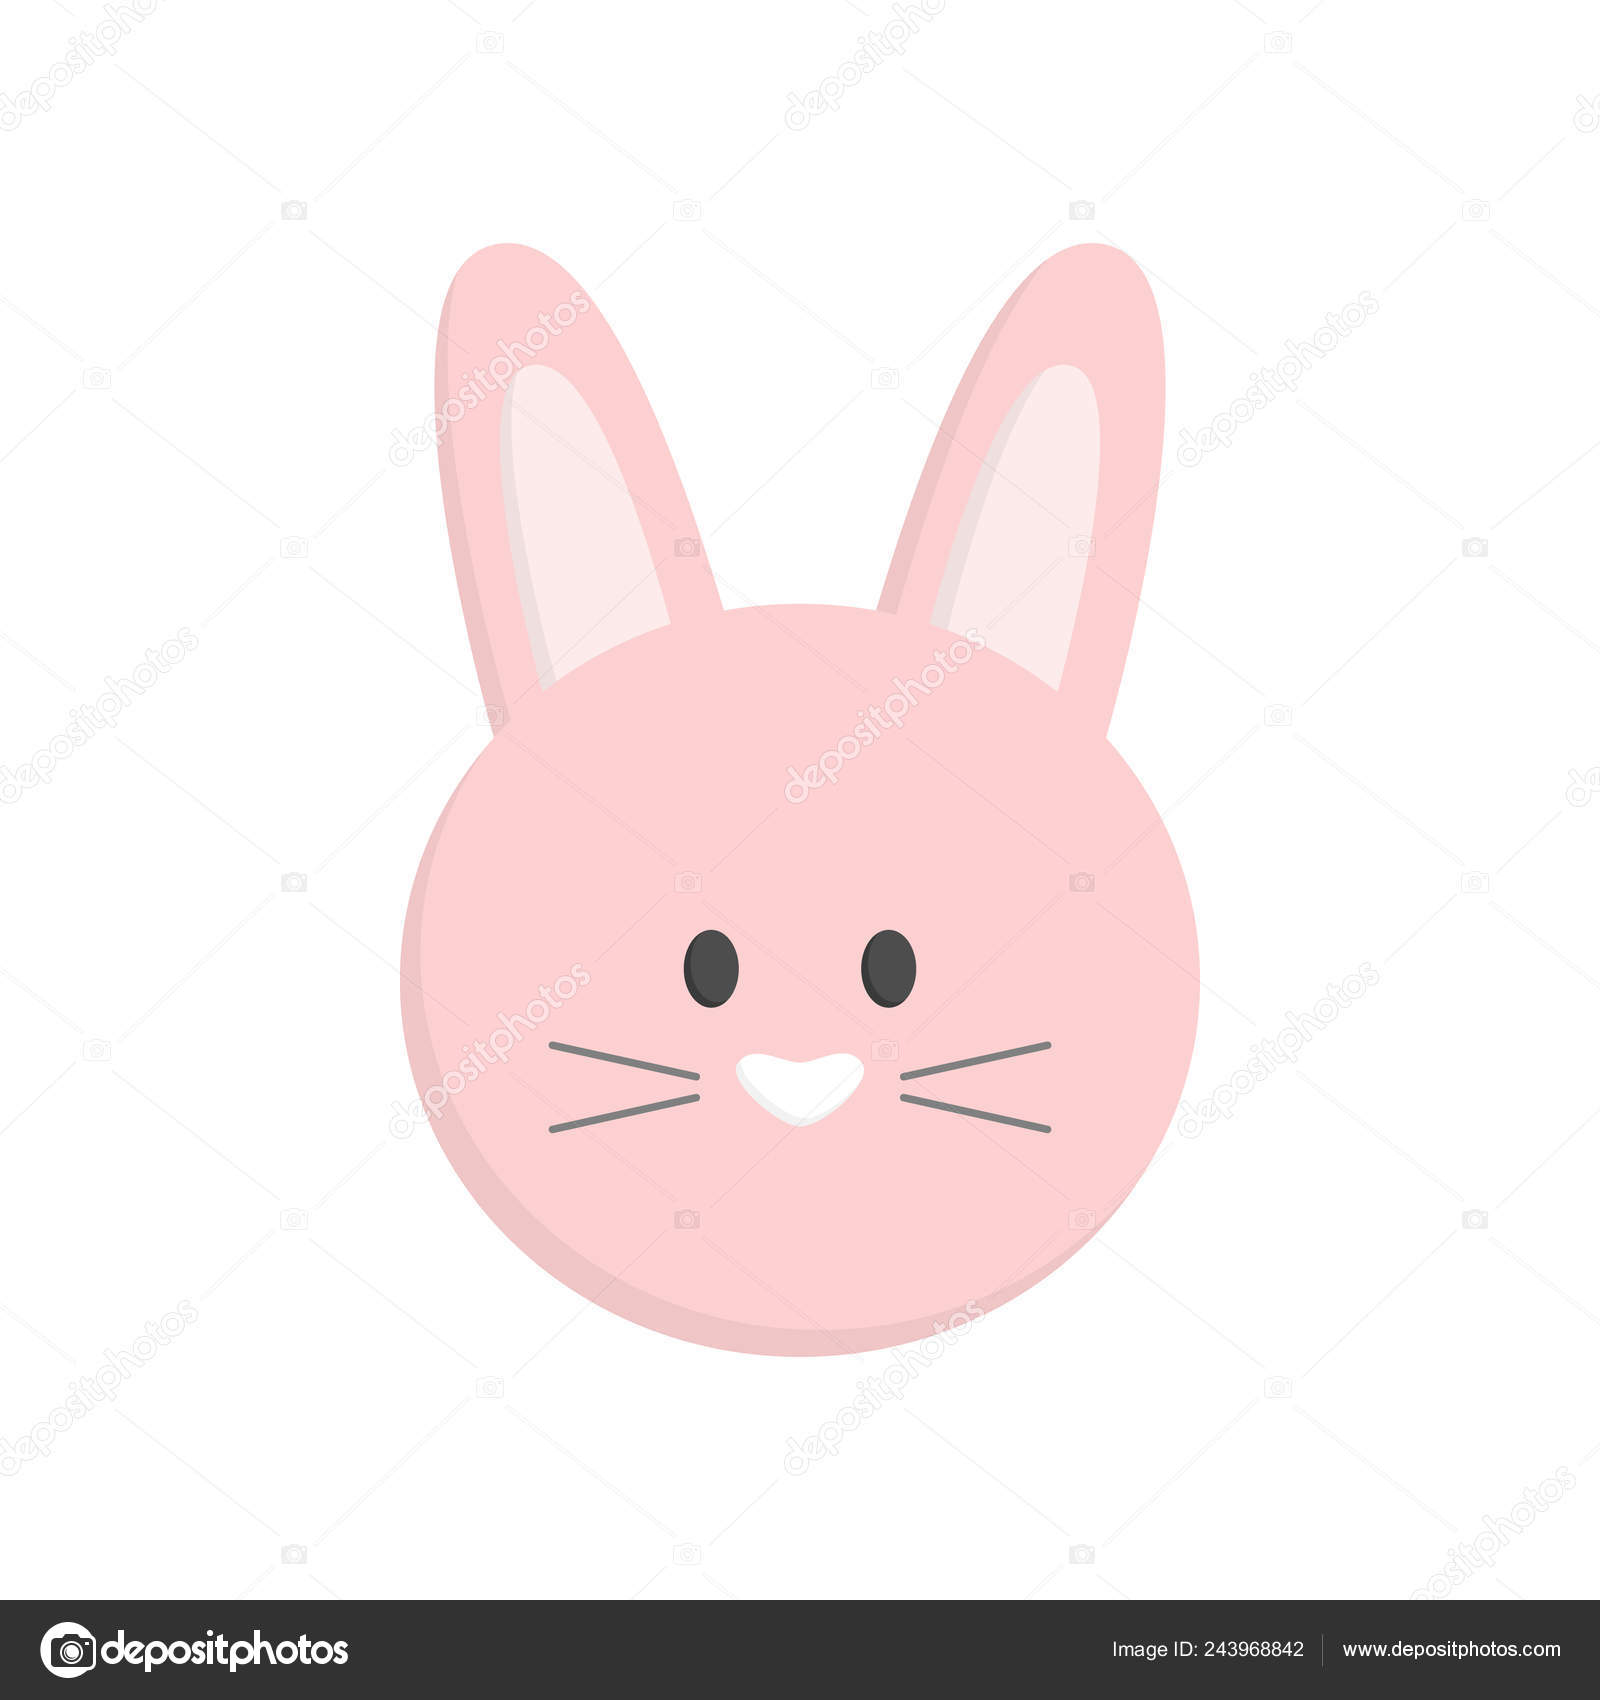 Cute Easter Bunny Head Isolated Pink Easter Bunny Face Vector.